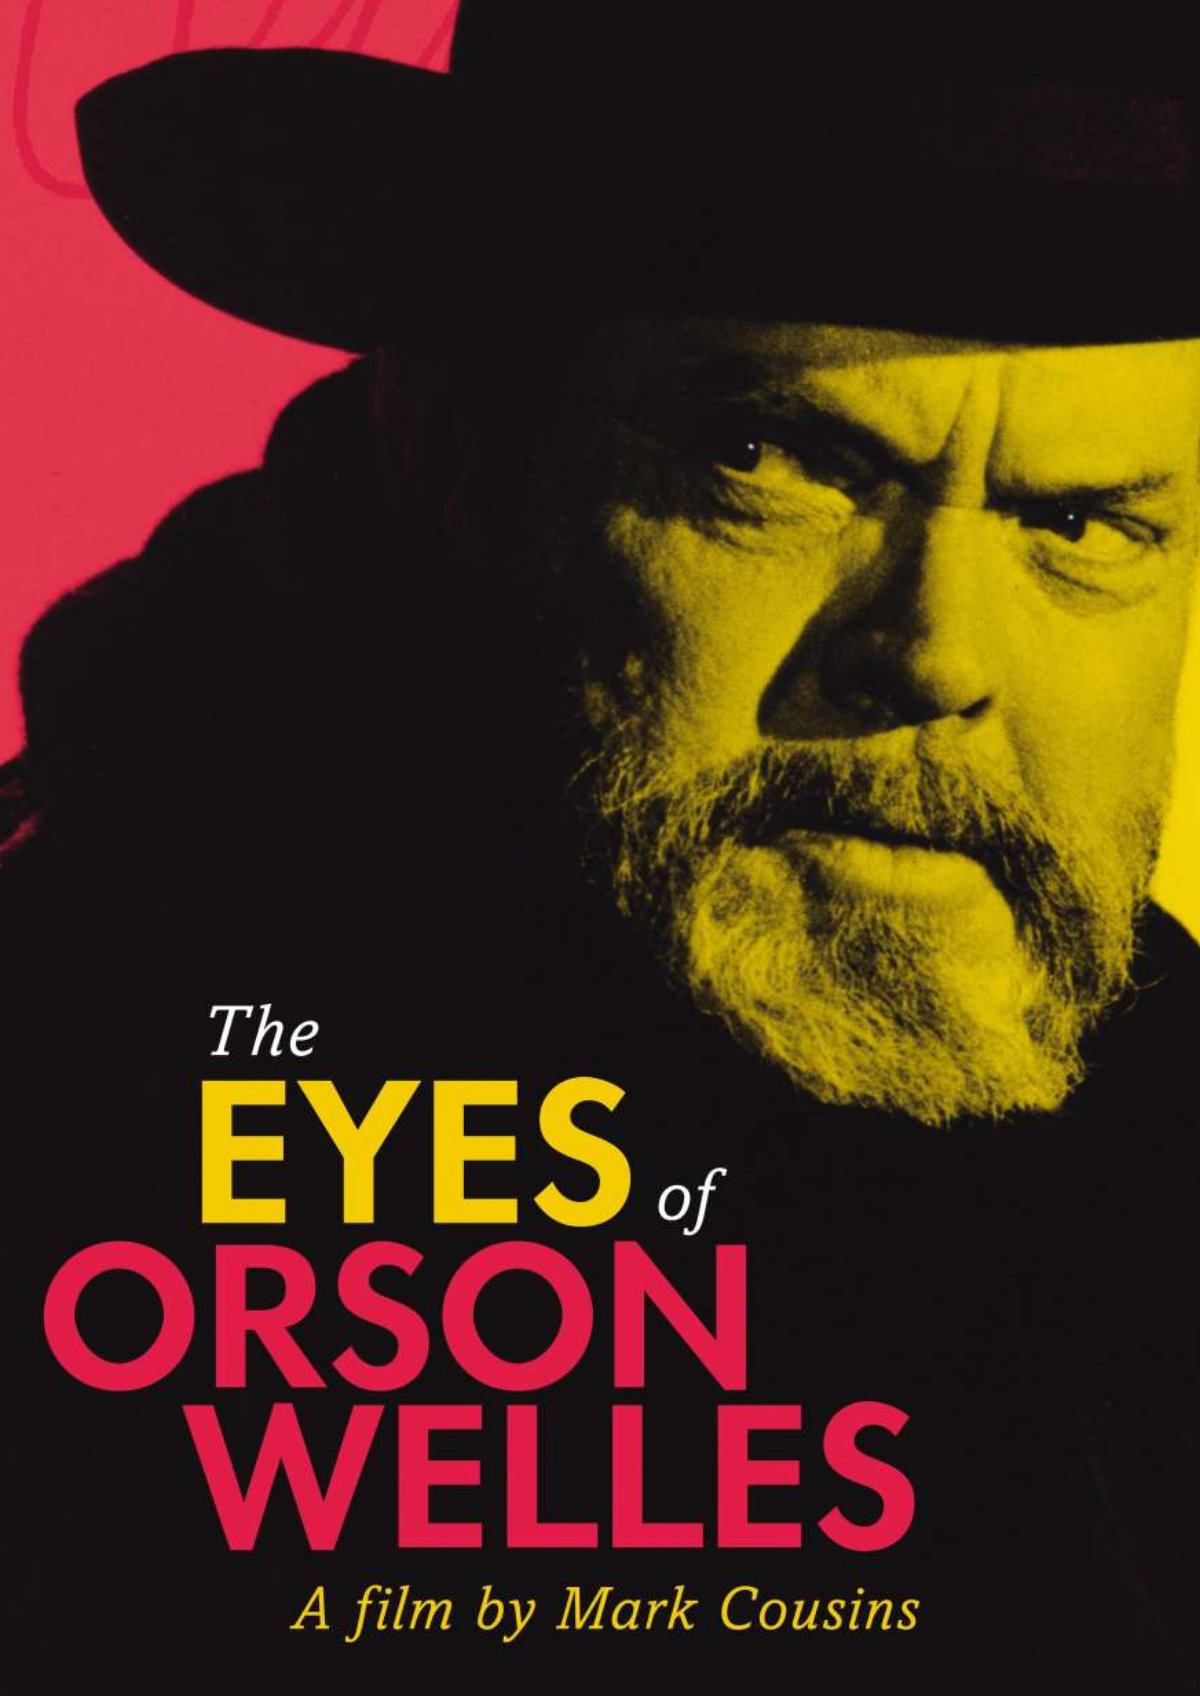 'The Eyes Of Orson Welles' movie poster